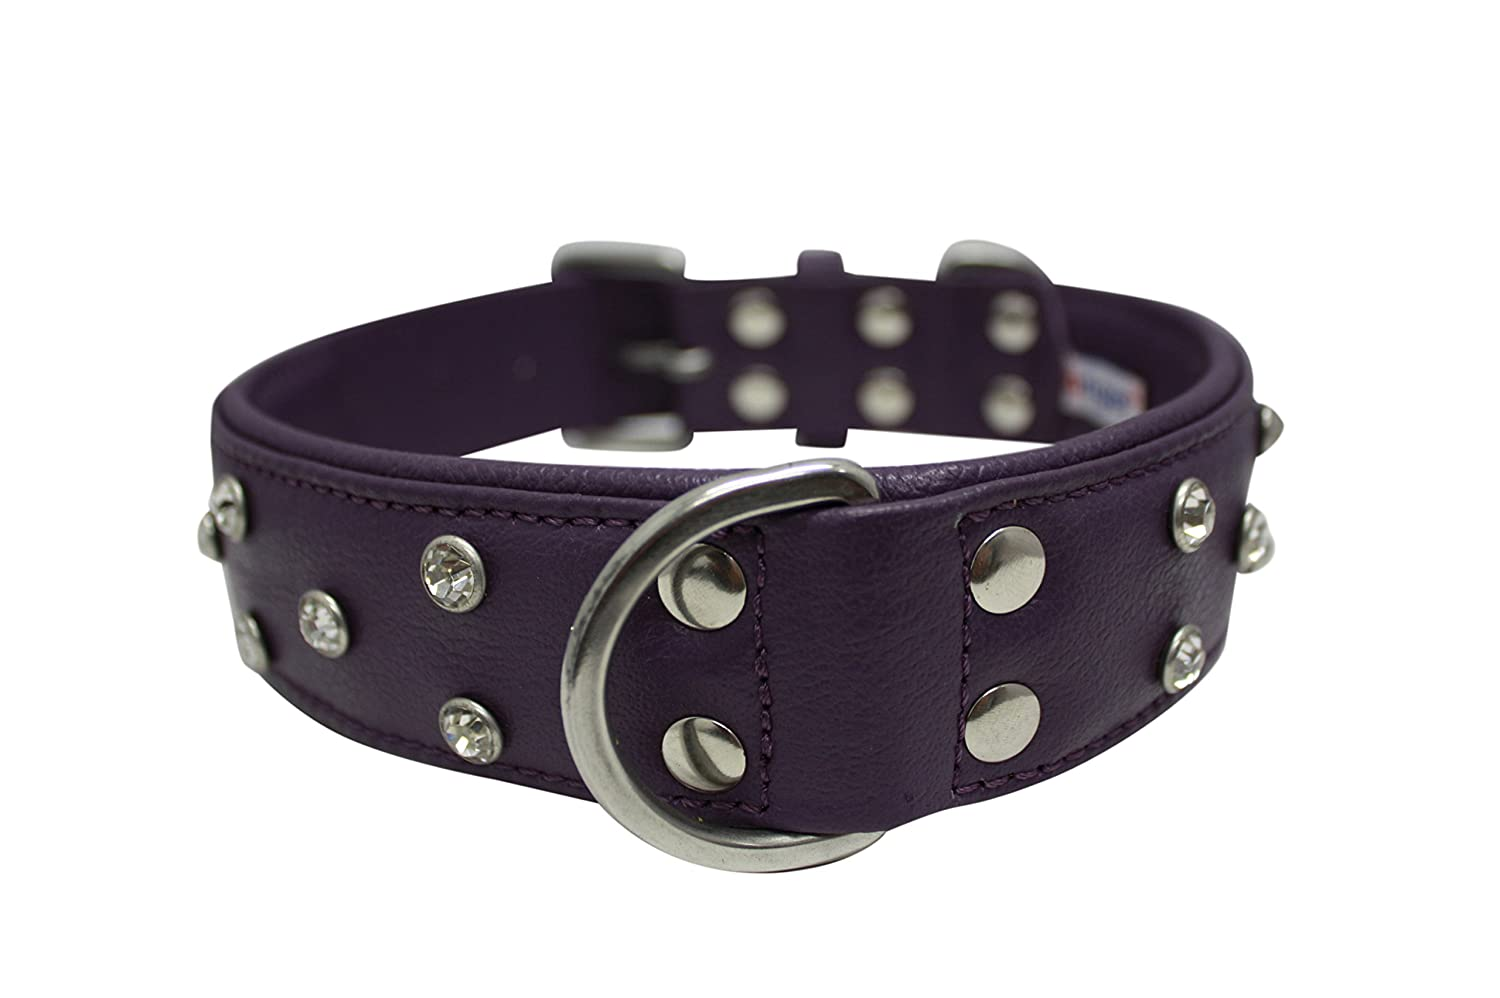 22 by 1.5-Inch Rhinestones Bling Leather Dog Collar, Wide, Padded, Double-Ply, Riveted Settings, 22  x 1.5 , Purple. Stainless Steel(Athens) Neck Size  16.5 -20